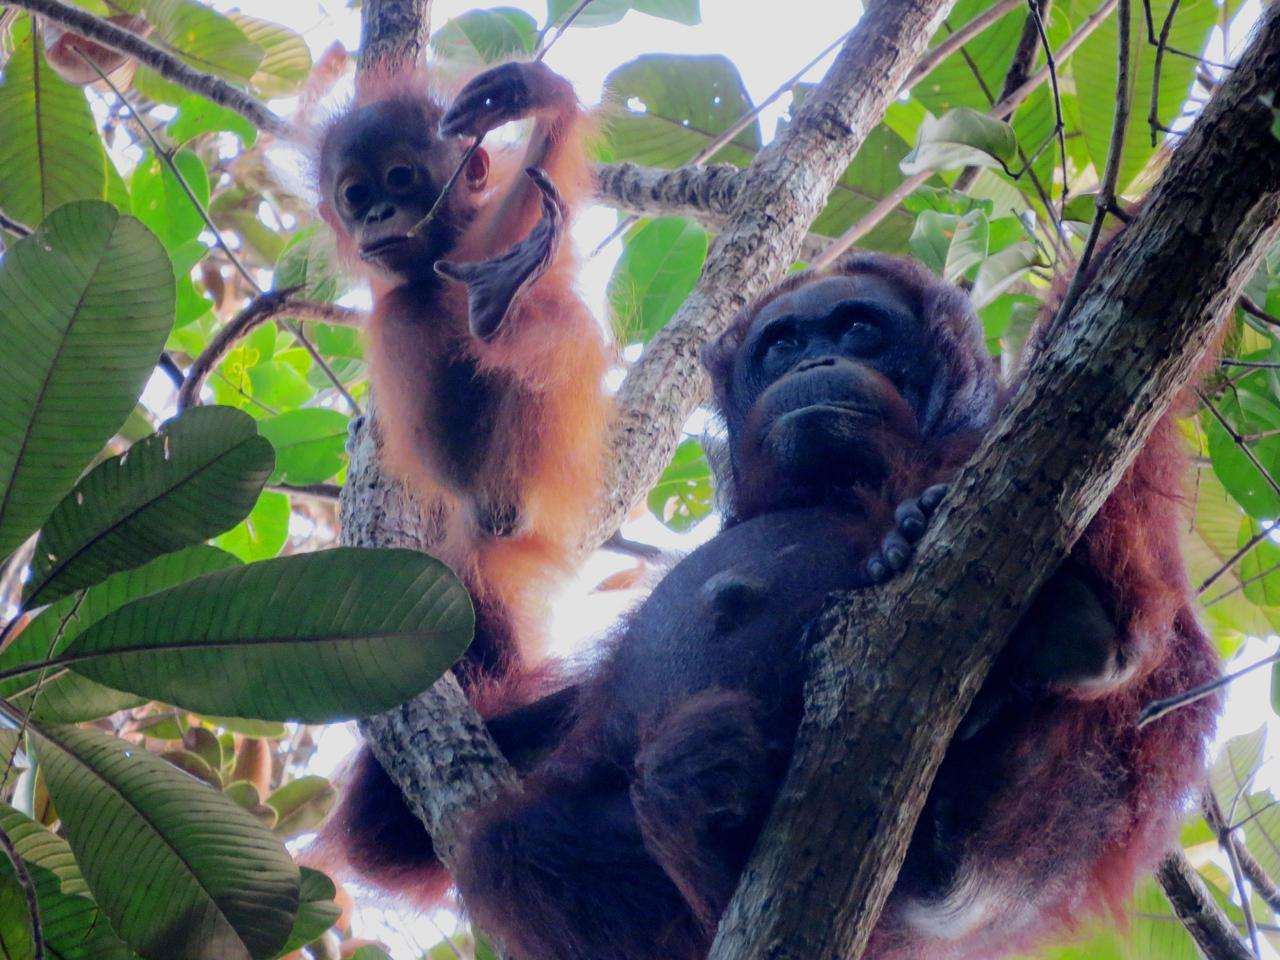 Orang-utan mother and baby, named Indah and Ima by the researchers